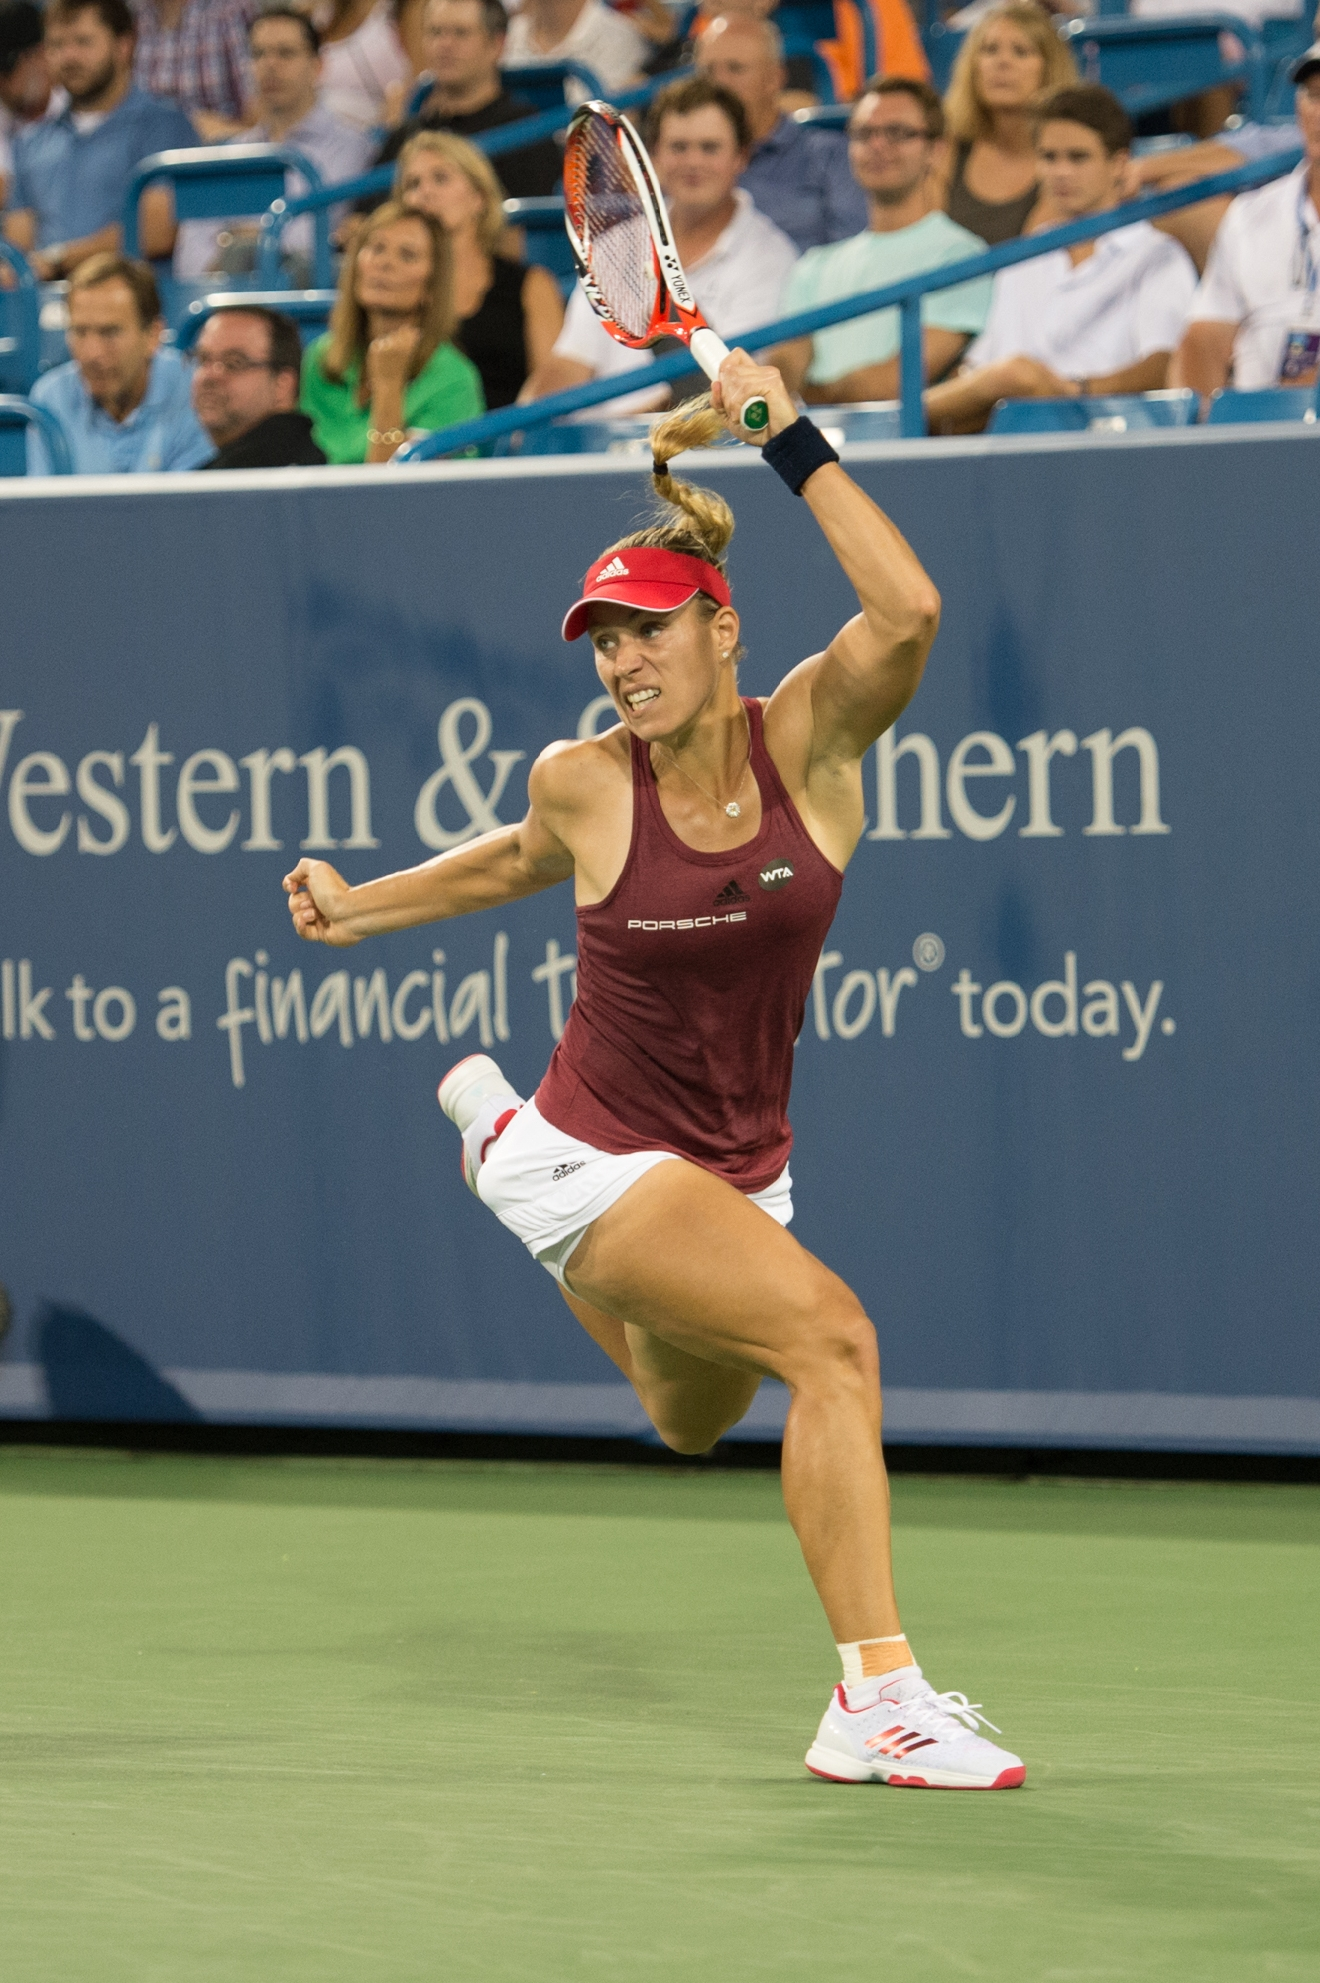 Angelique Kerber / Image: Chris Jenco